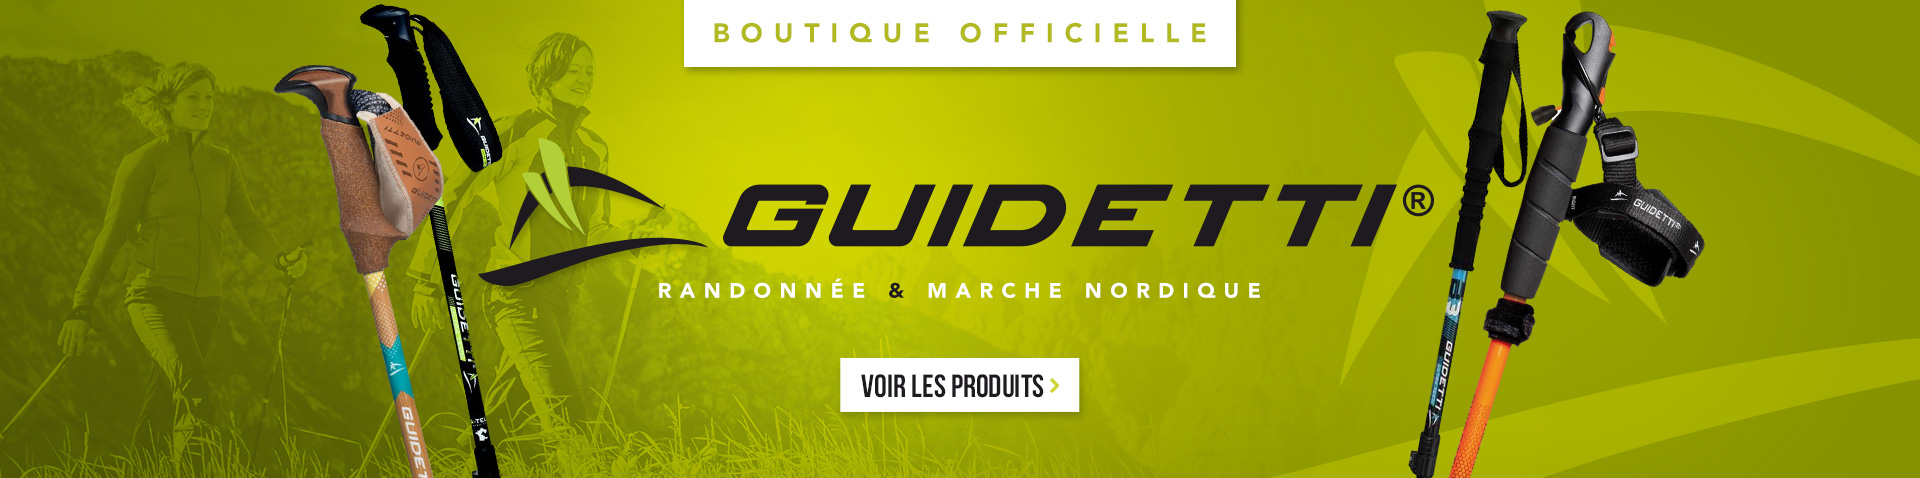 Boutique Officielle Guidetti